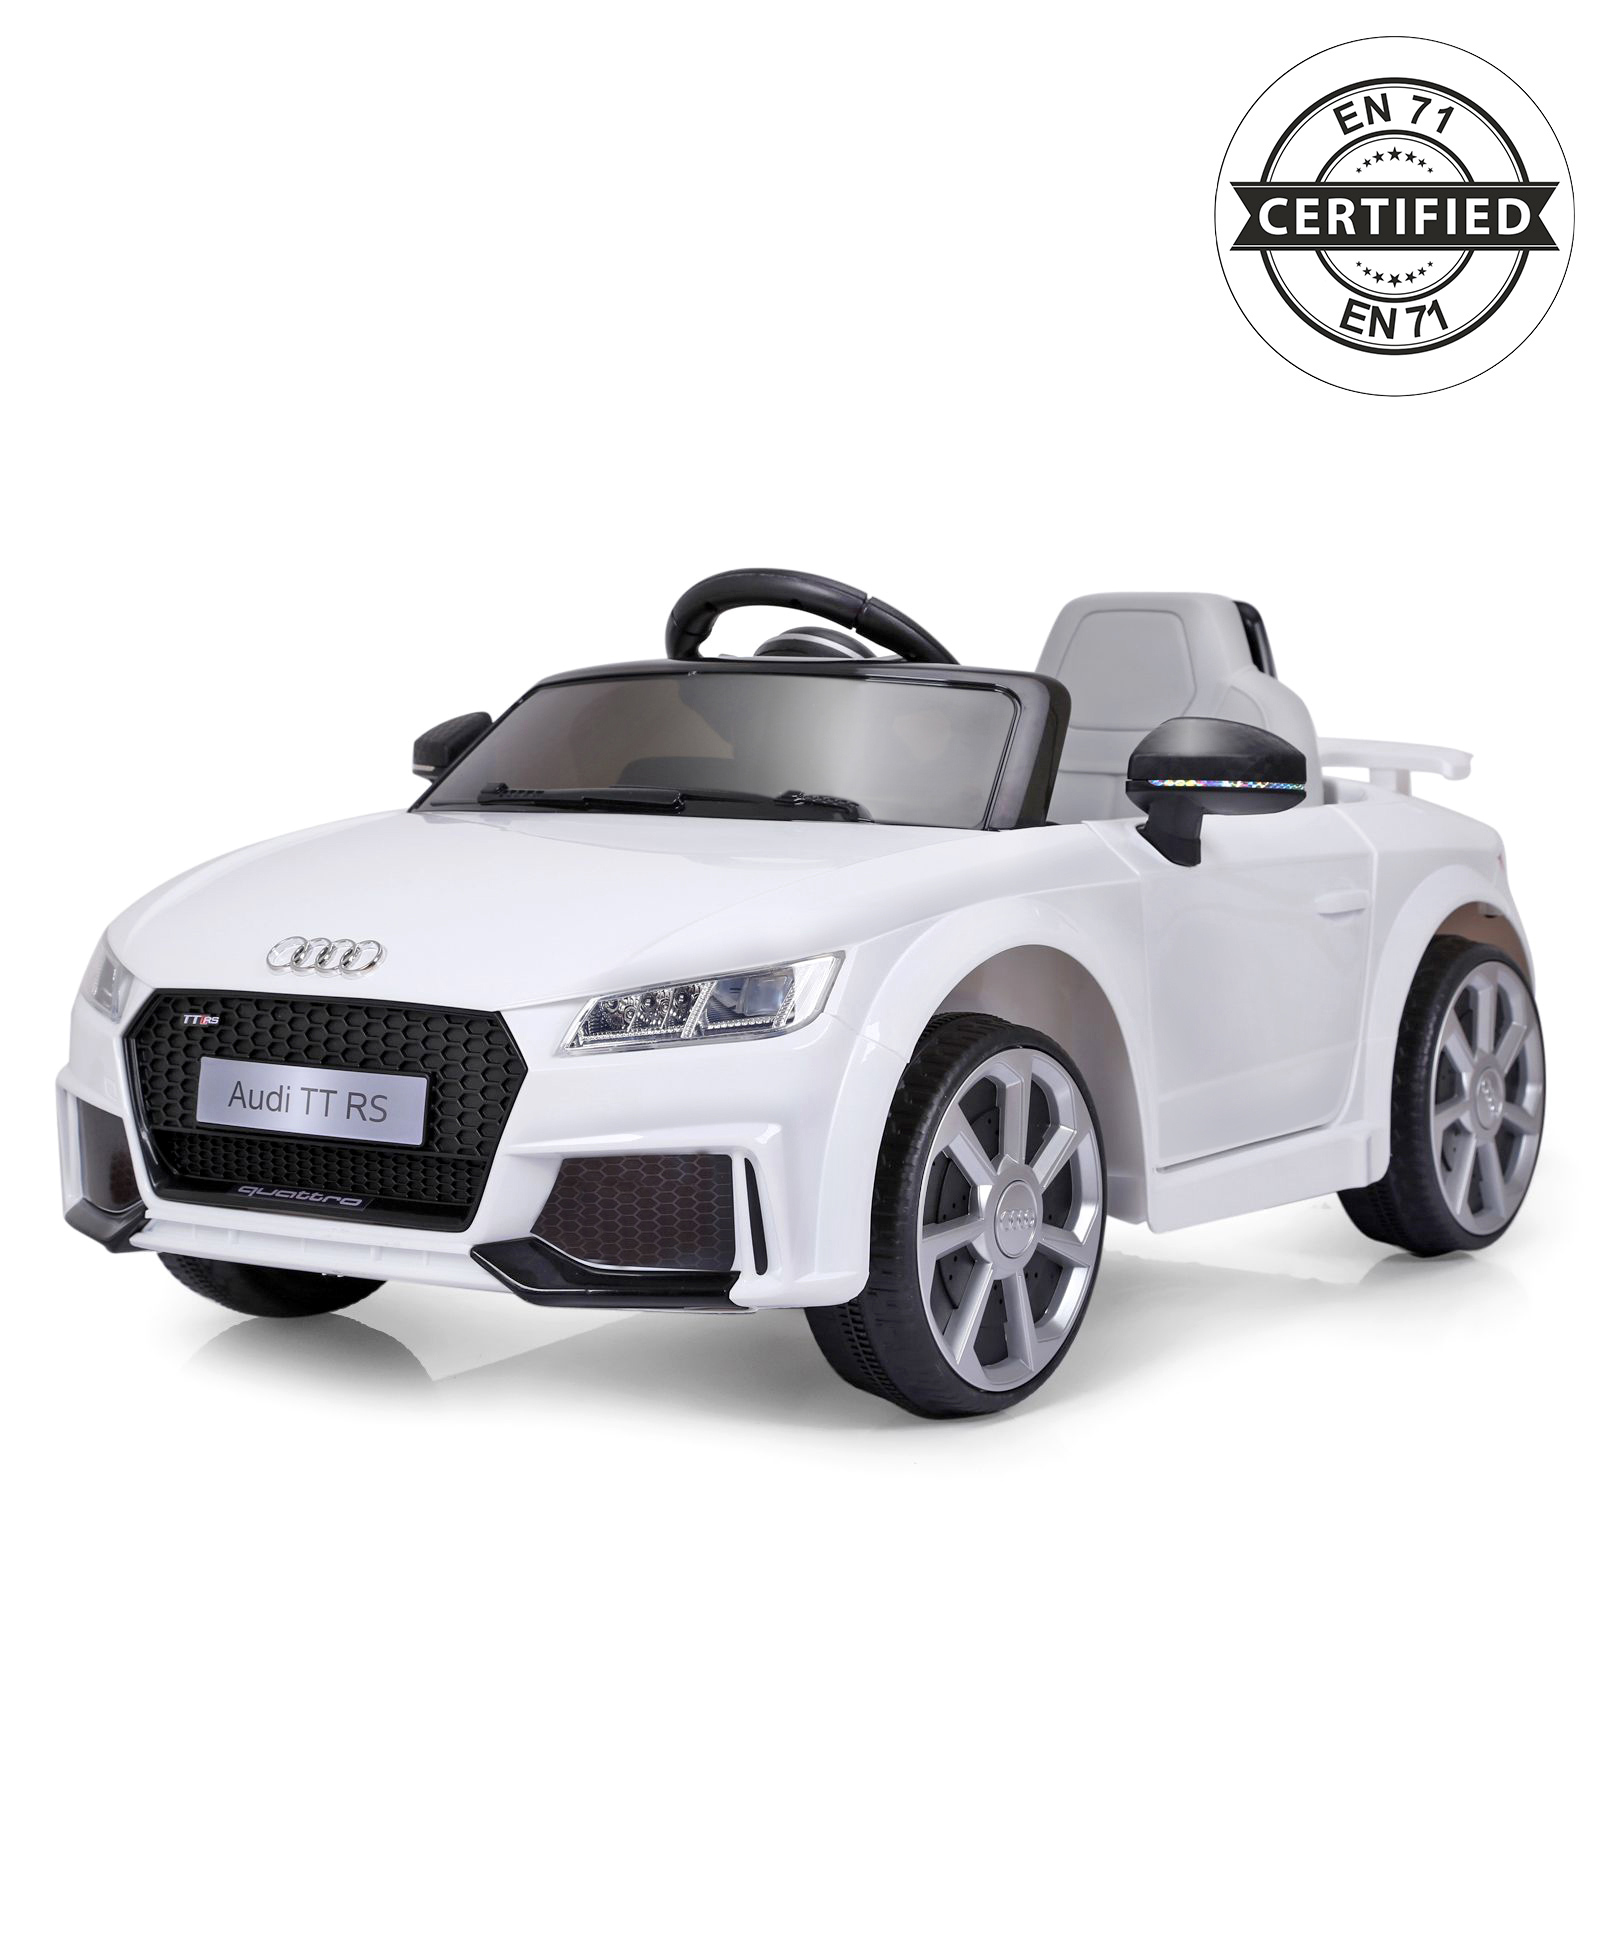 Audi Tt Rs Battery Operated Ride On White Online In India Buy At Best Price From Firstcry Com 1893402